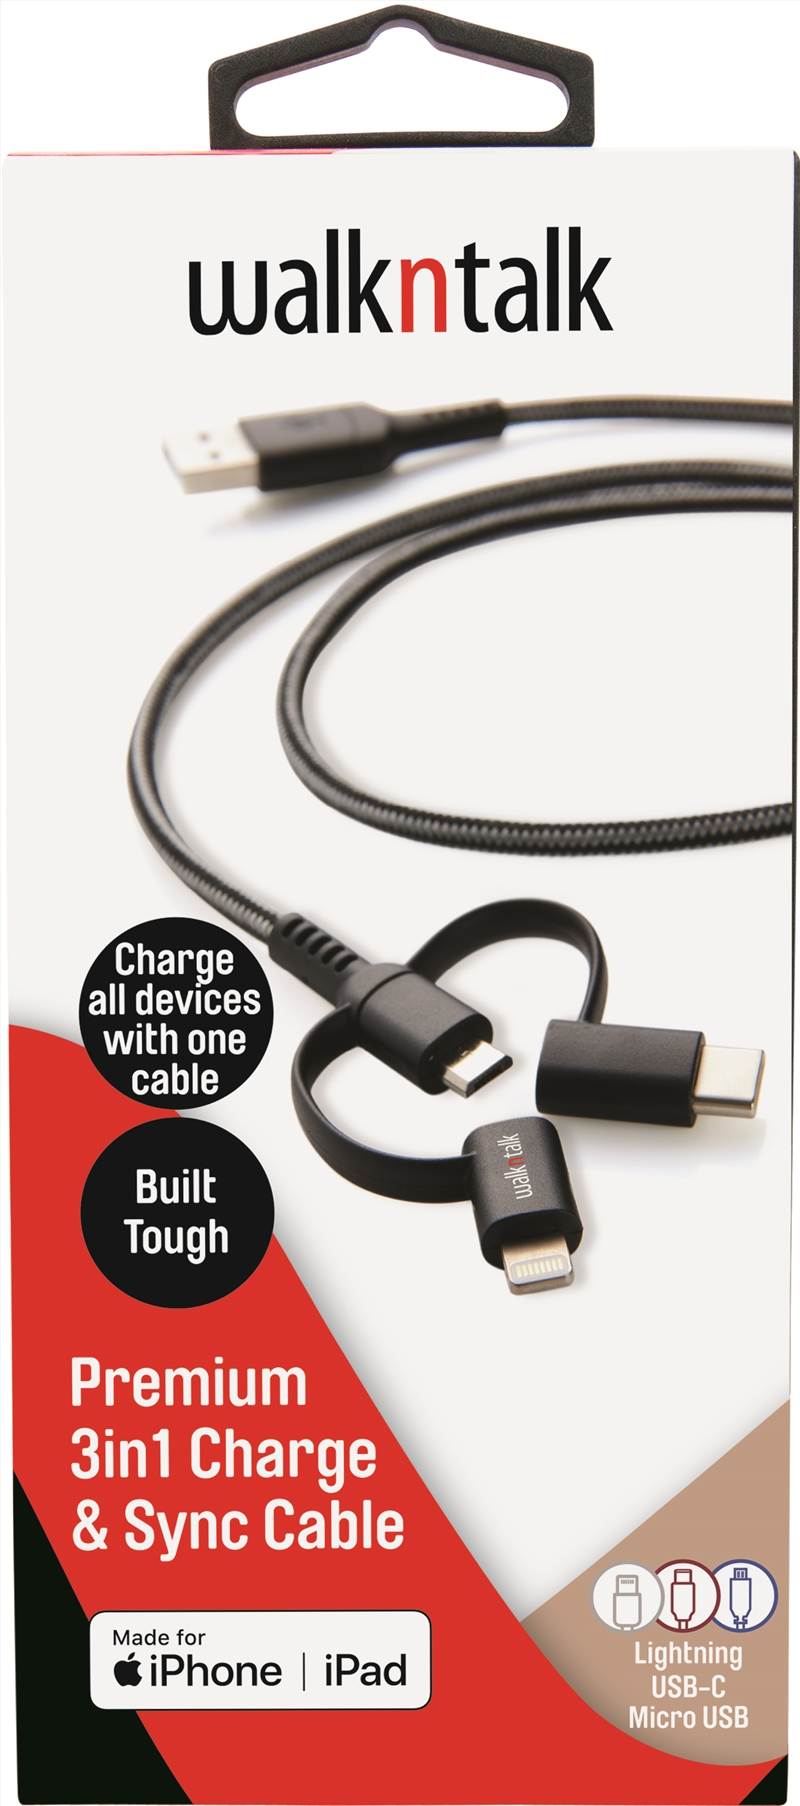 Walk n Talk 3in1 Charge & Sync Cable Lightning/USB-C/Micro USB | Accessories